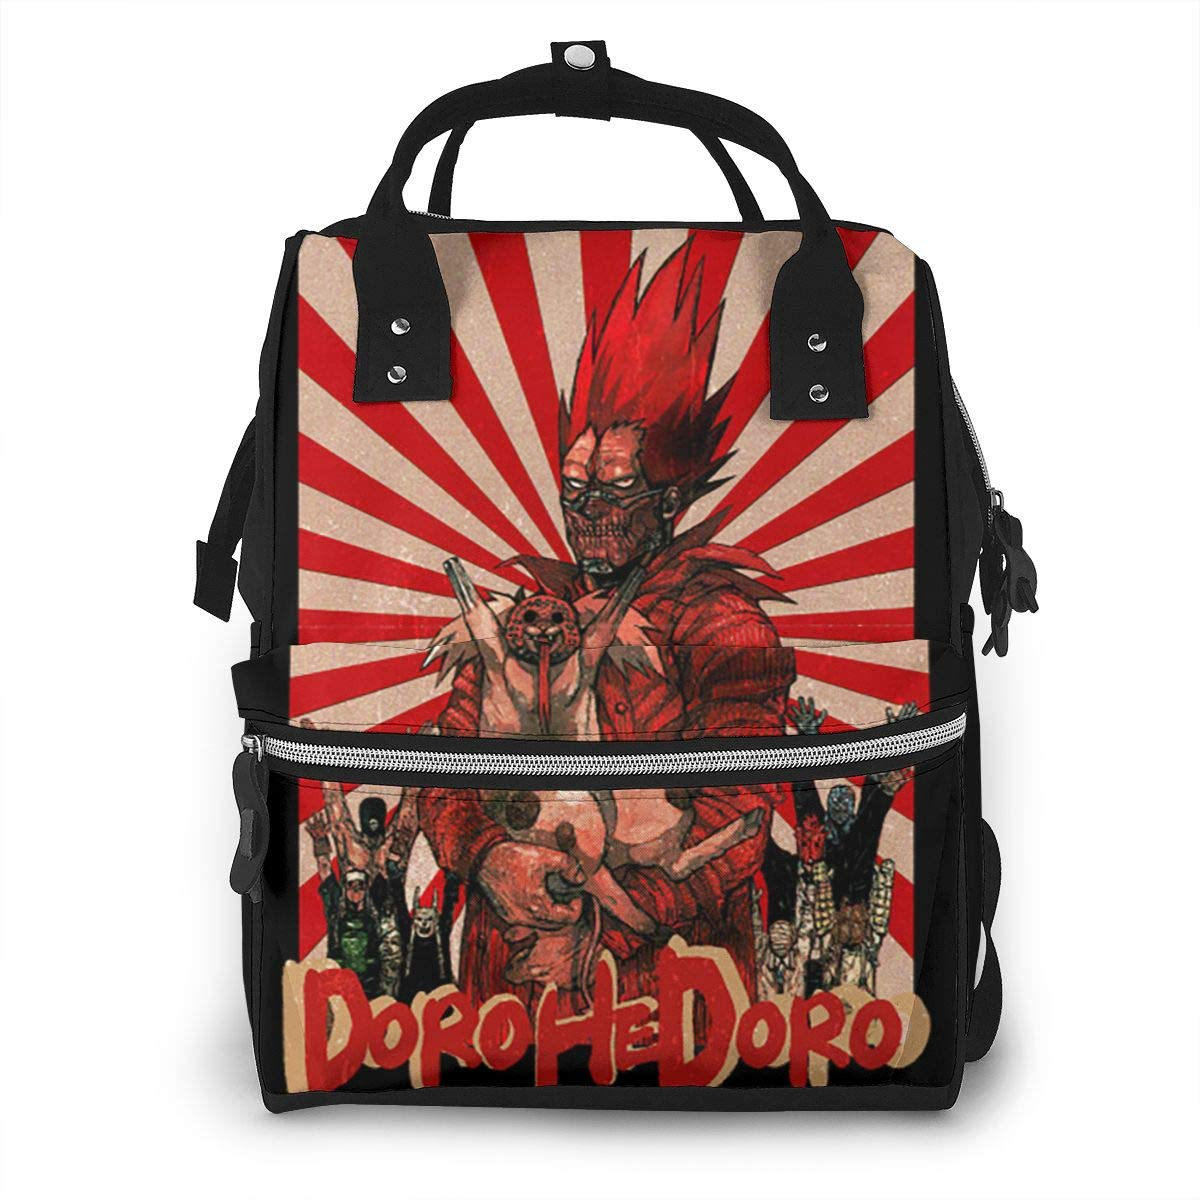 Dorohedoro Cool Durable Large Capacity Diaper Bag Mommy Backpack